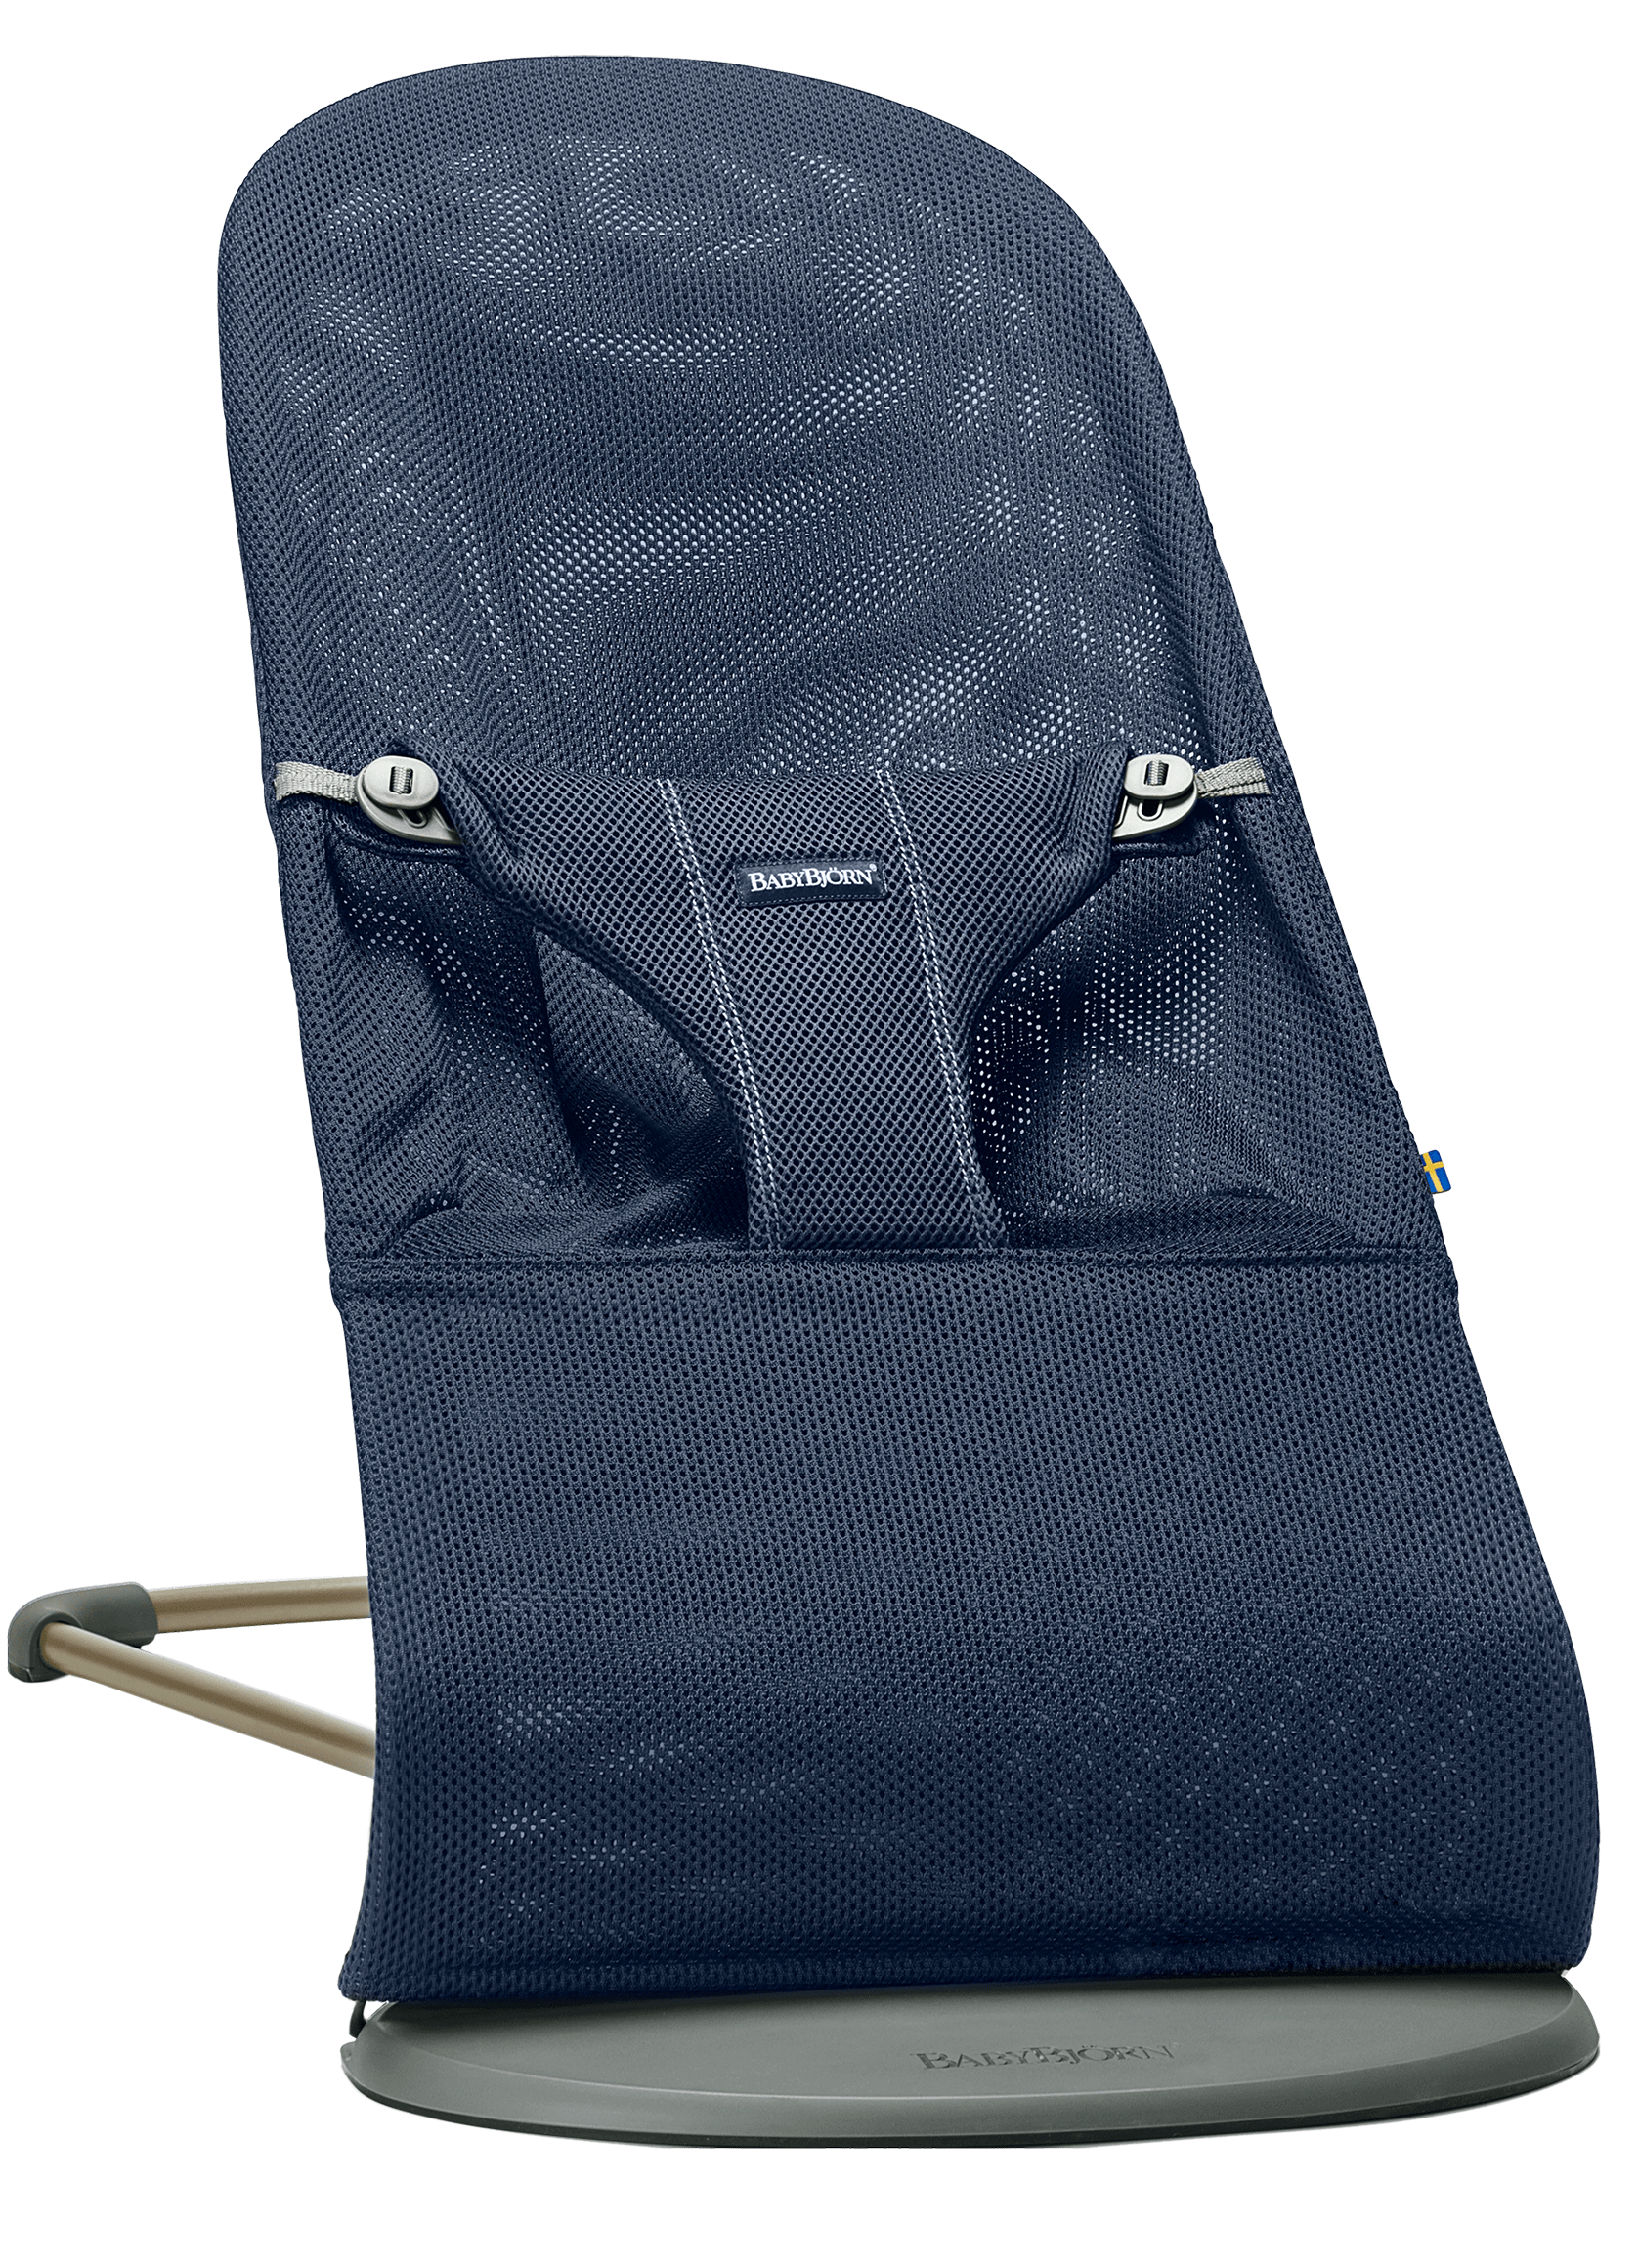 BABYBJORN Bouncer Bliss - Navy blue, Mesh